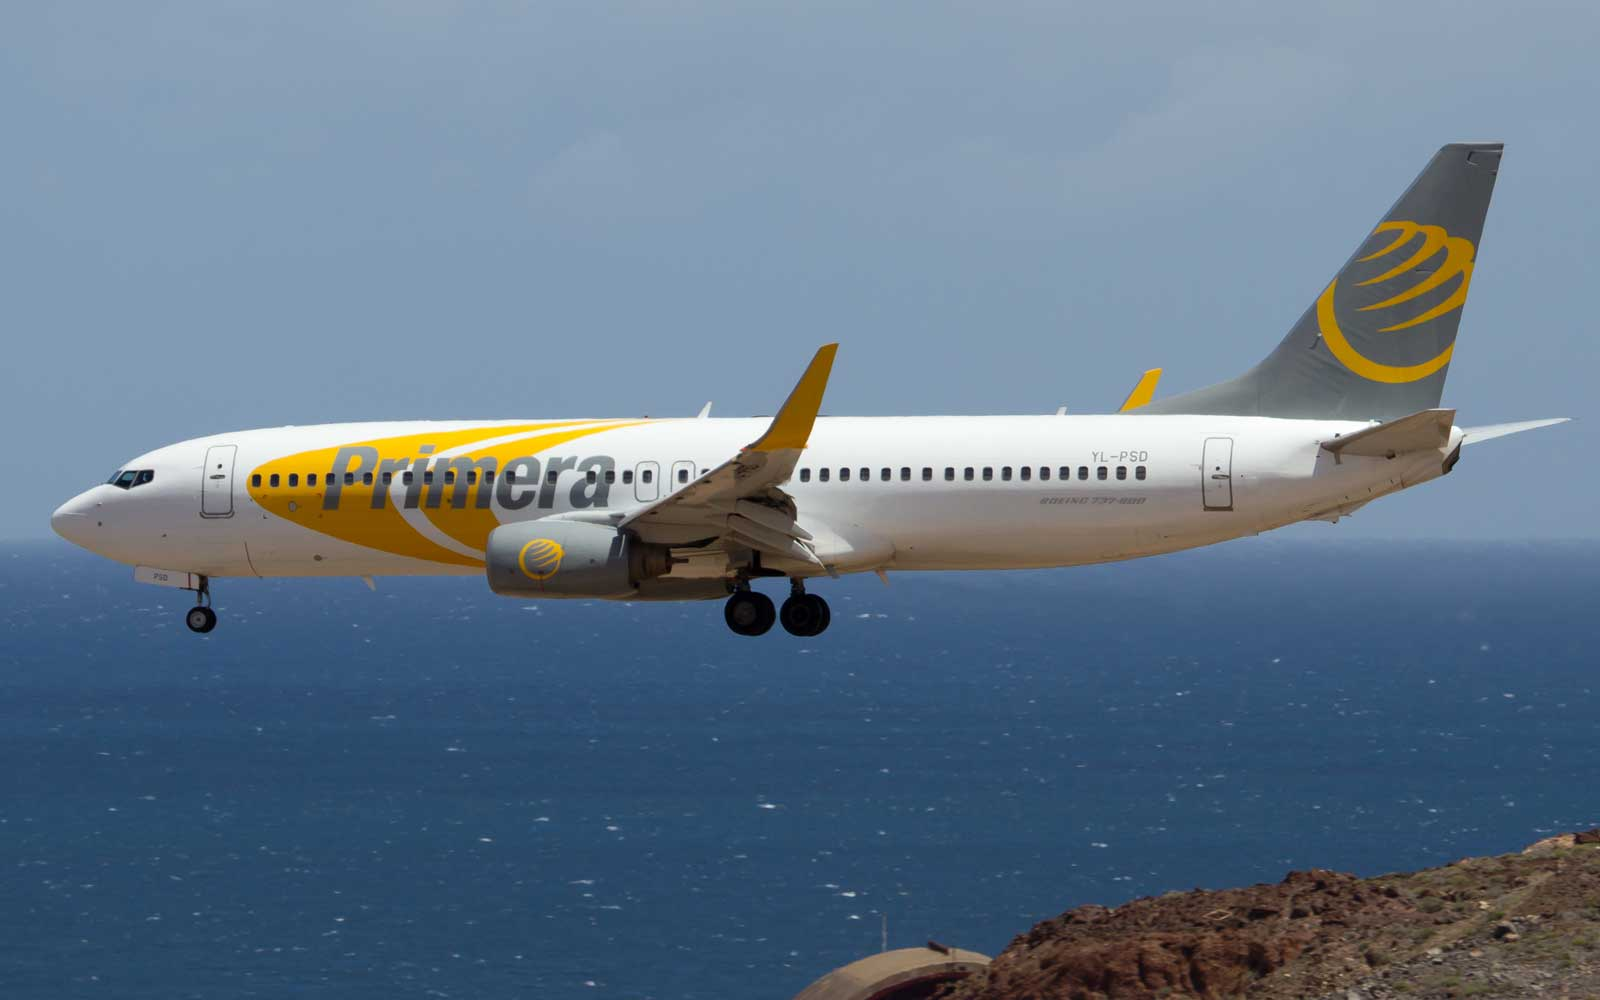 Primera Air Ceases Operations — Here's What to Do If You Have a Flight Booked on the Airline